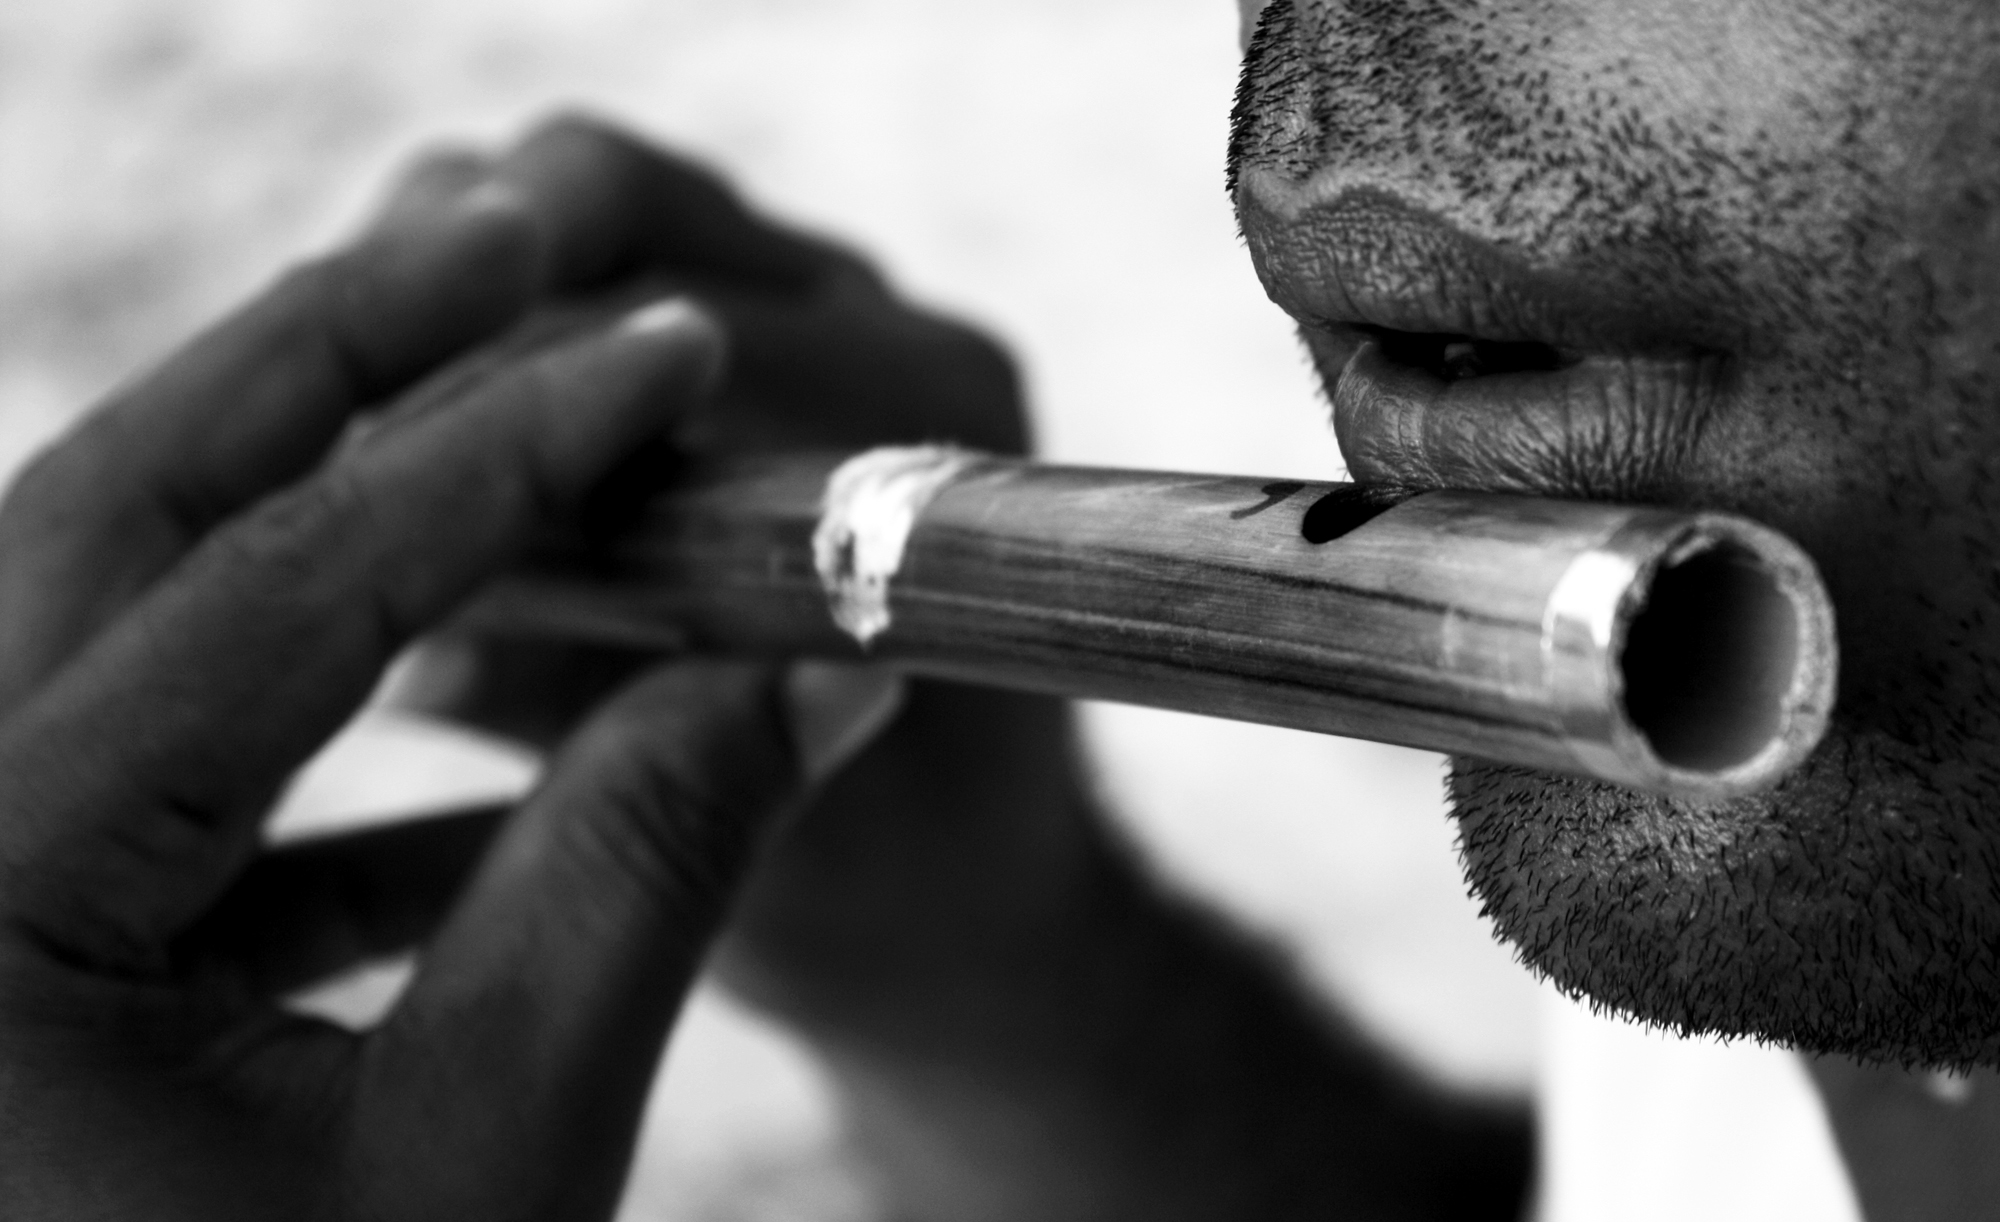 close up of man's mouth and hands while playing the flute